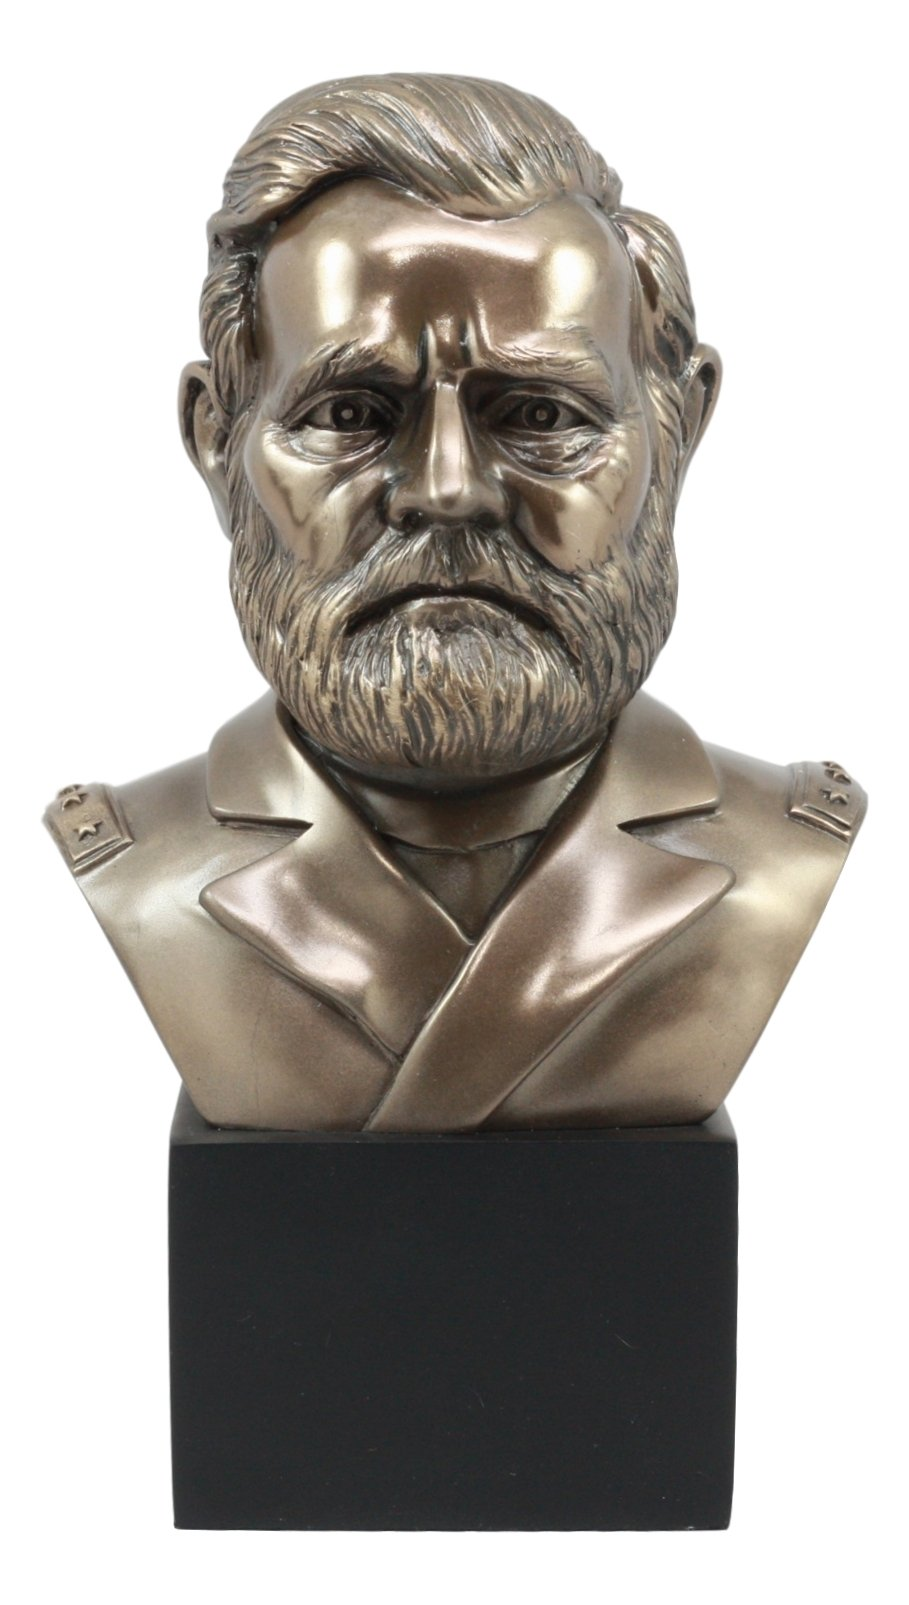 Ebros United States of America 18th President Ulysses Grant Bust Statue 8.75 Inch Tall American Civil War General Patriotic Historical Figurine by Ebros Gift